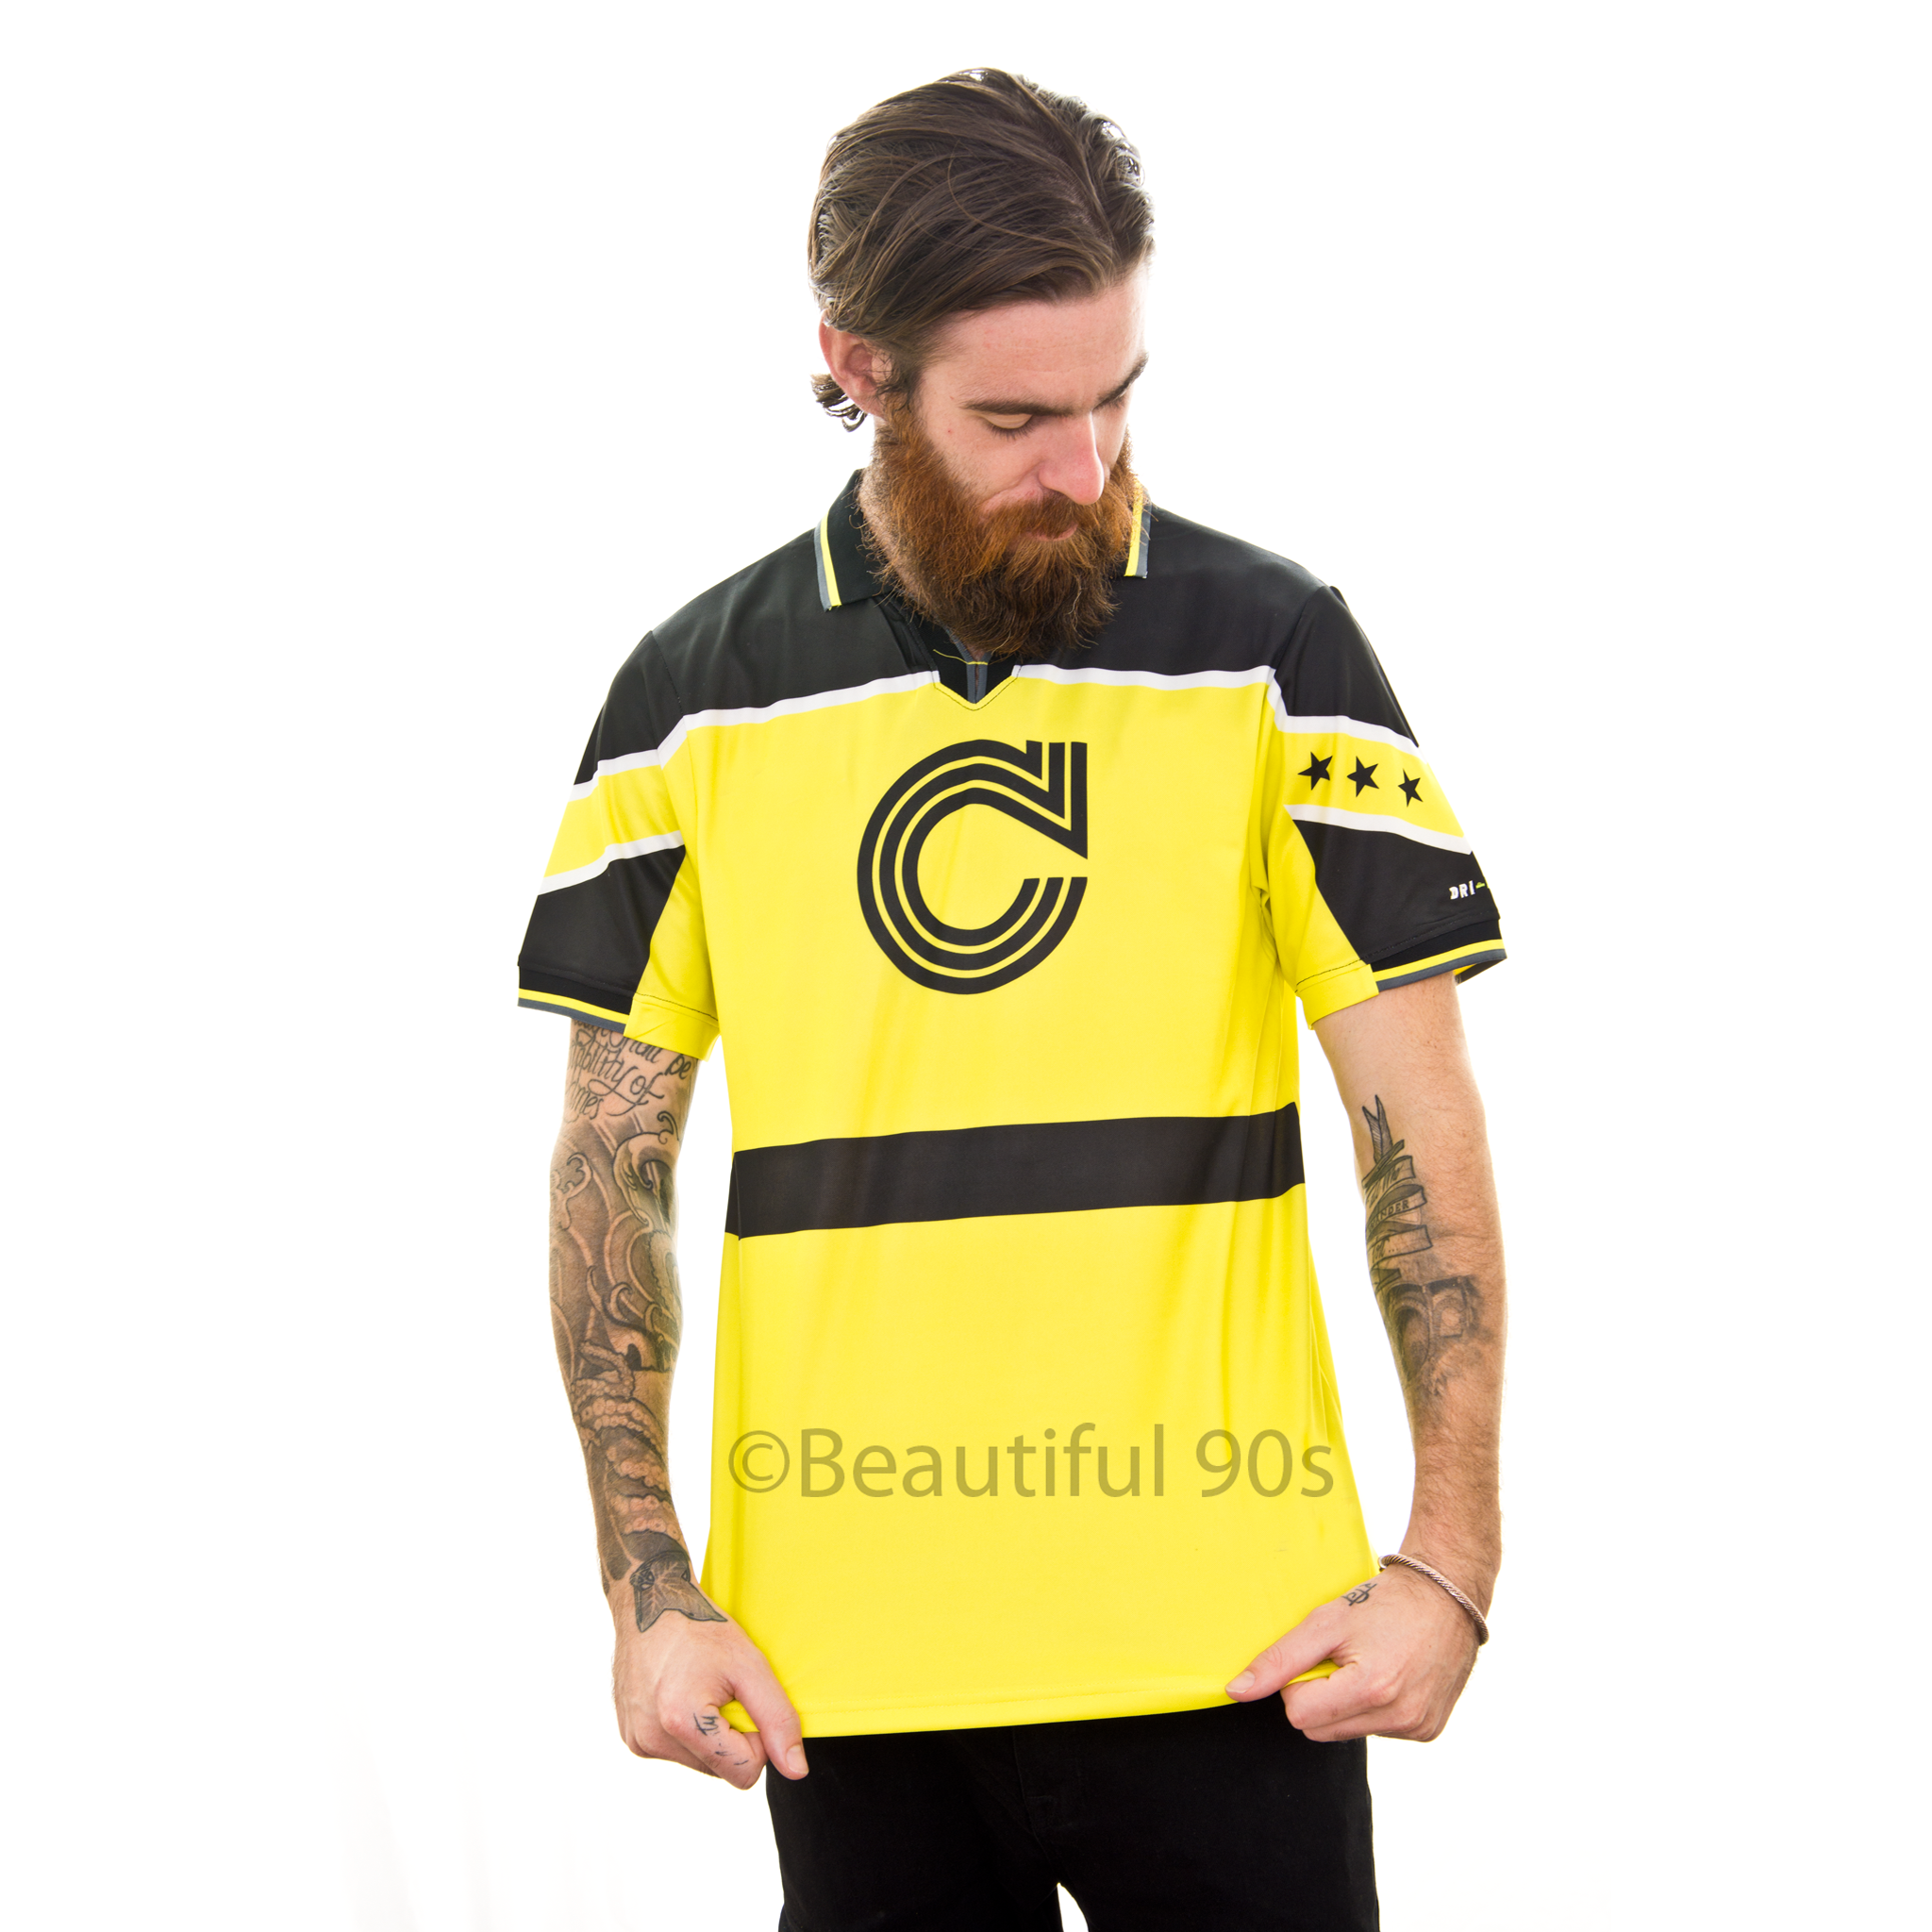 1996-1997 Dortmund replica retro football shirt